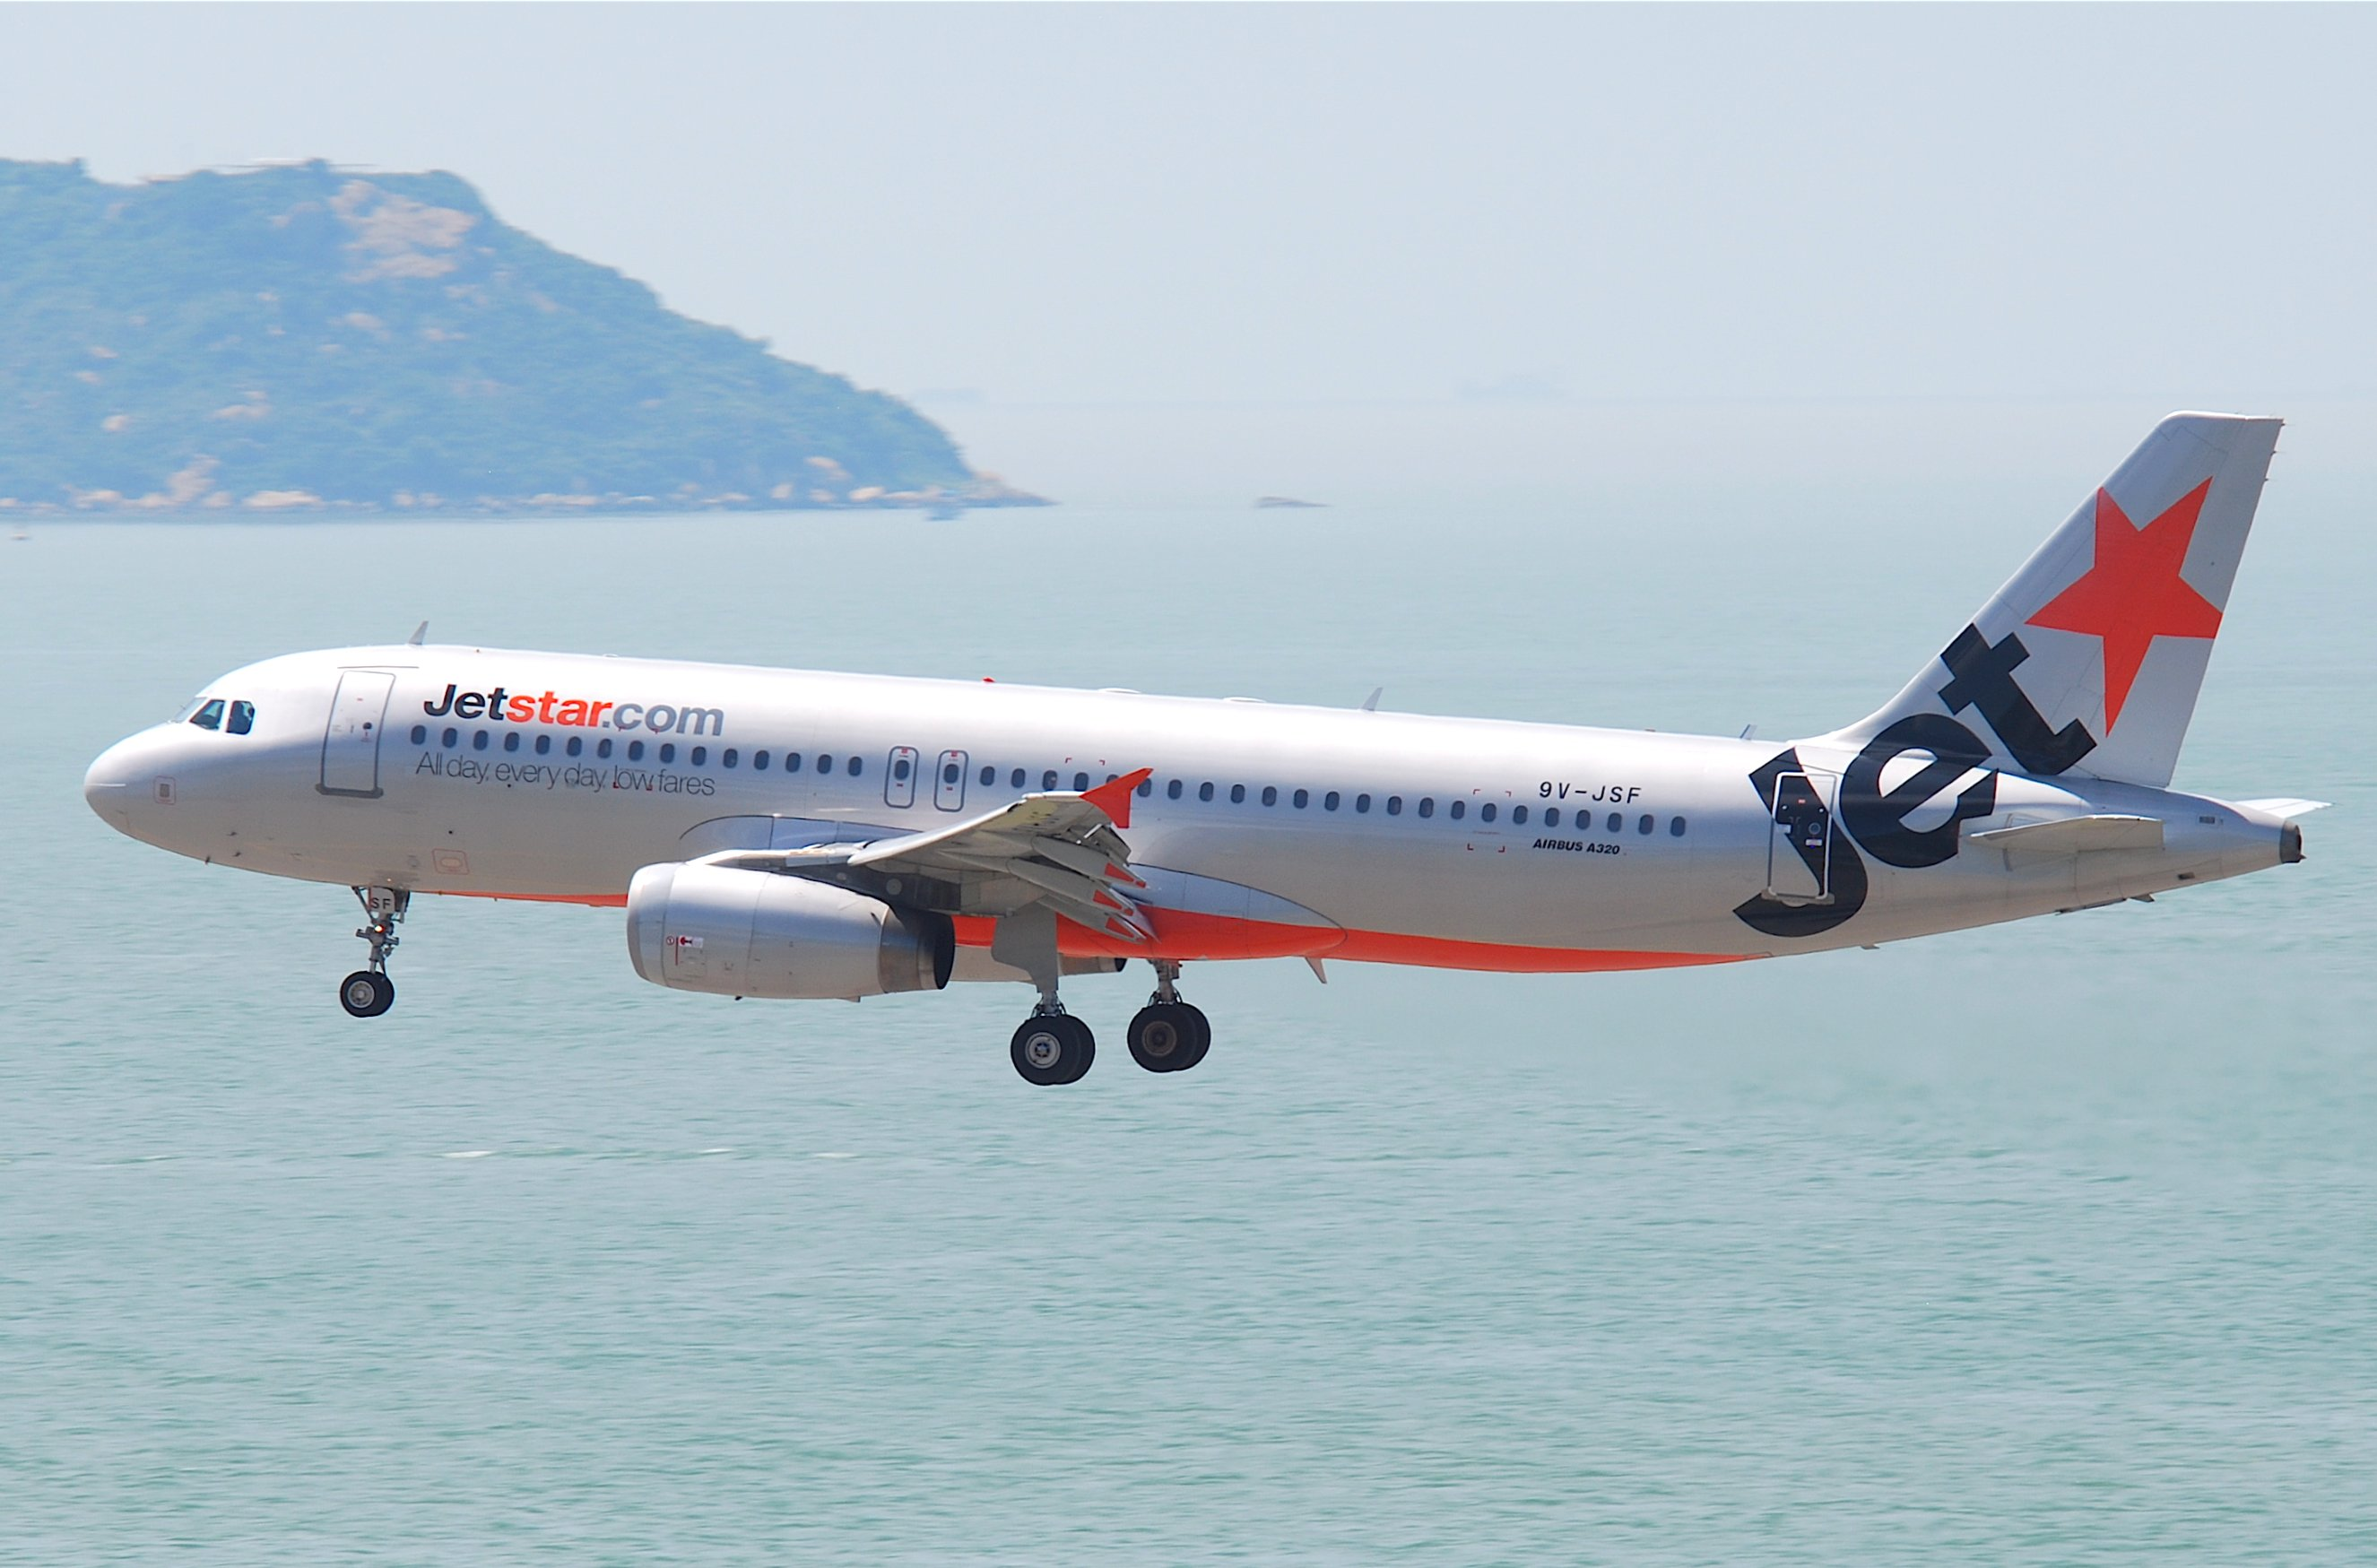 jetstar hong kong Hong kong authorities have rejected jetstar hong kong airways application to operate flights from the city, due to its majority foreign ownership.